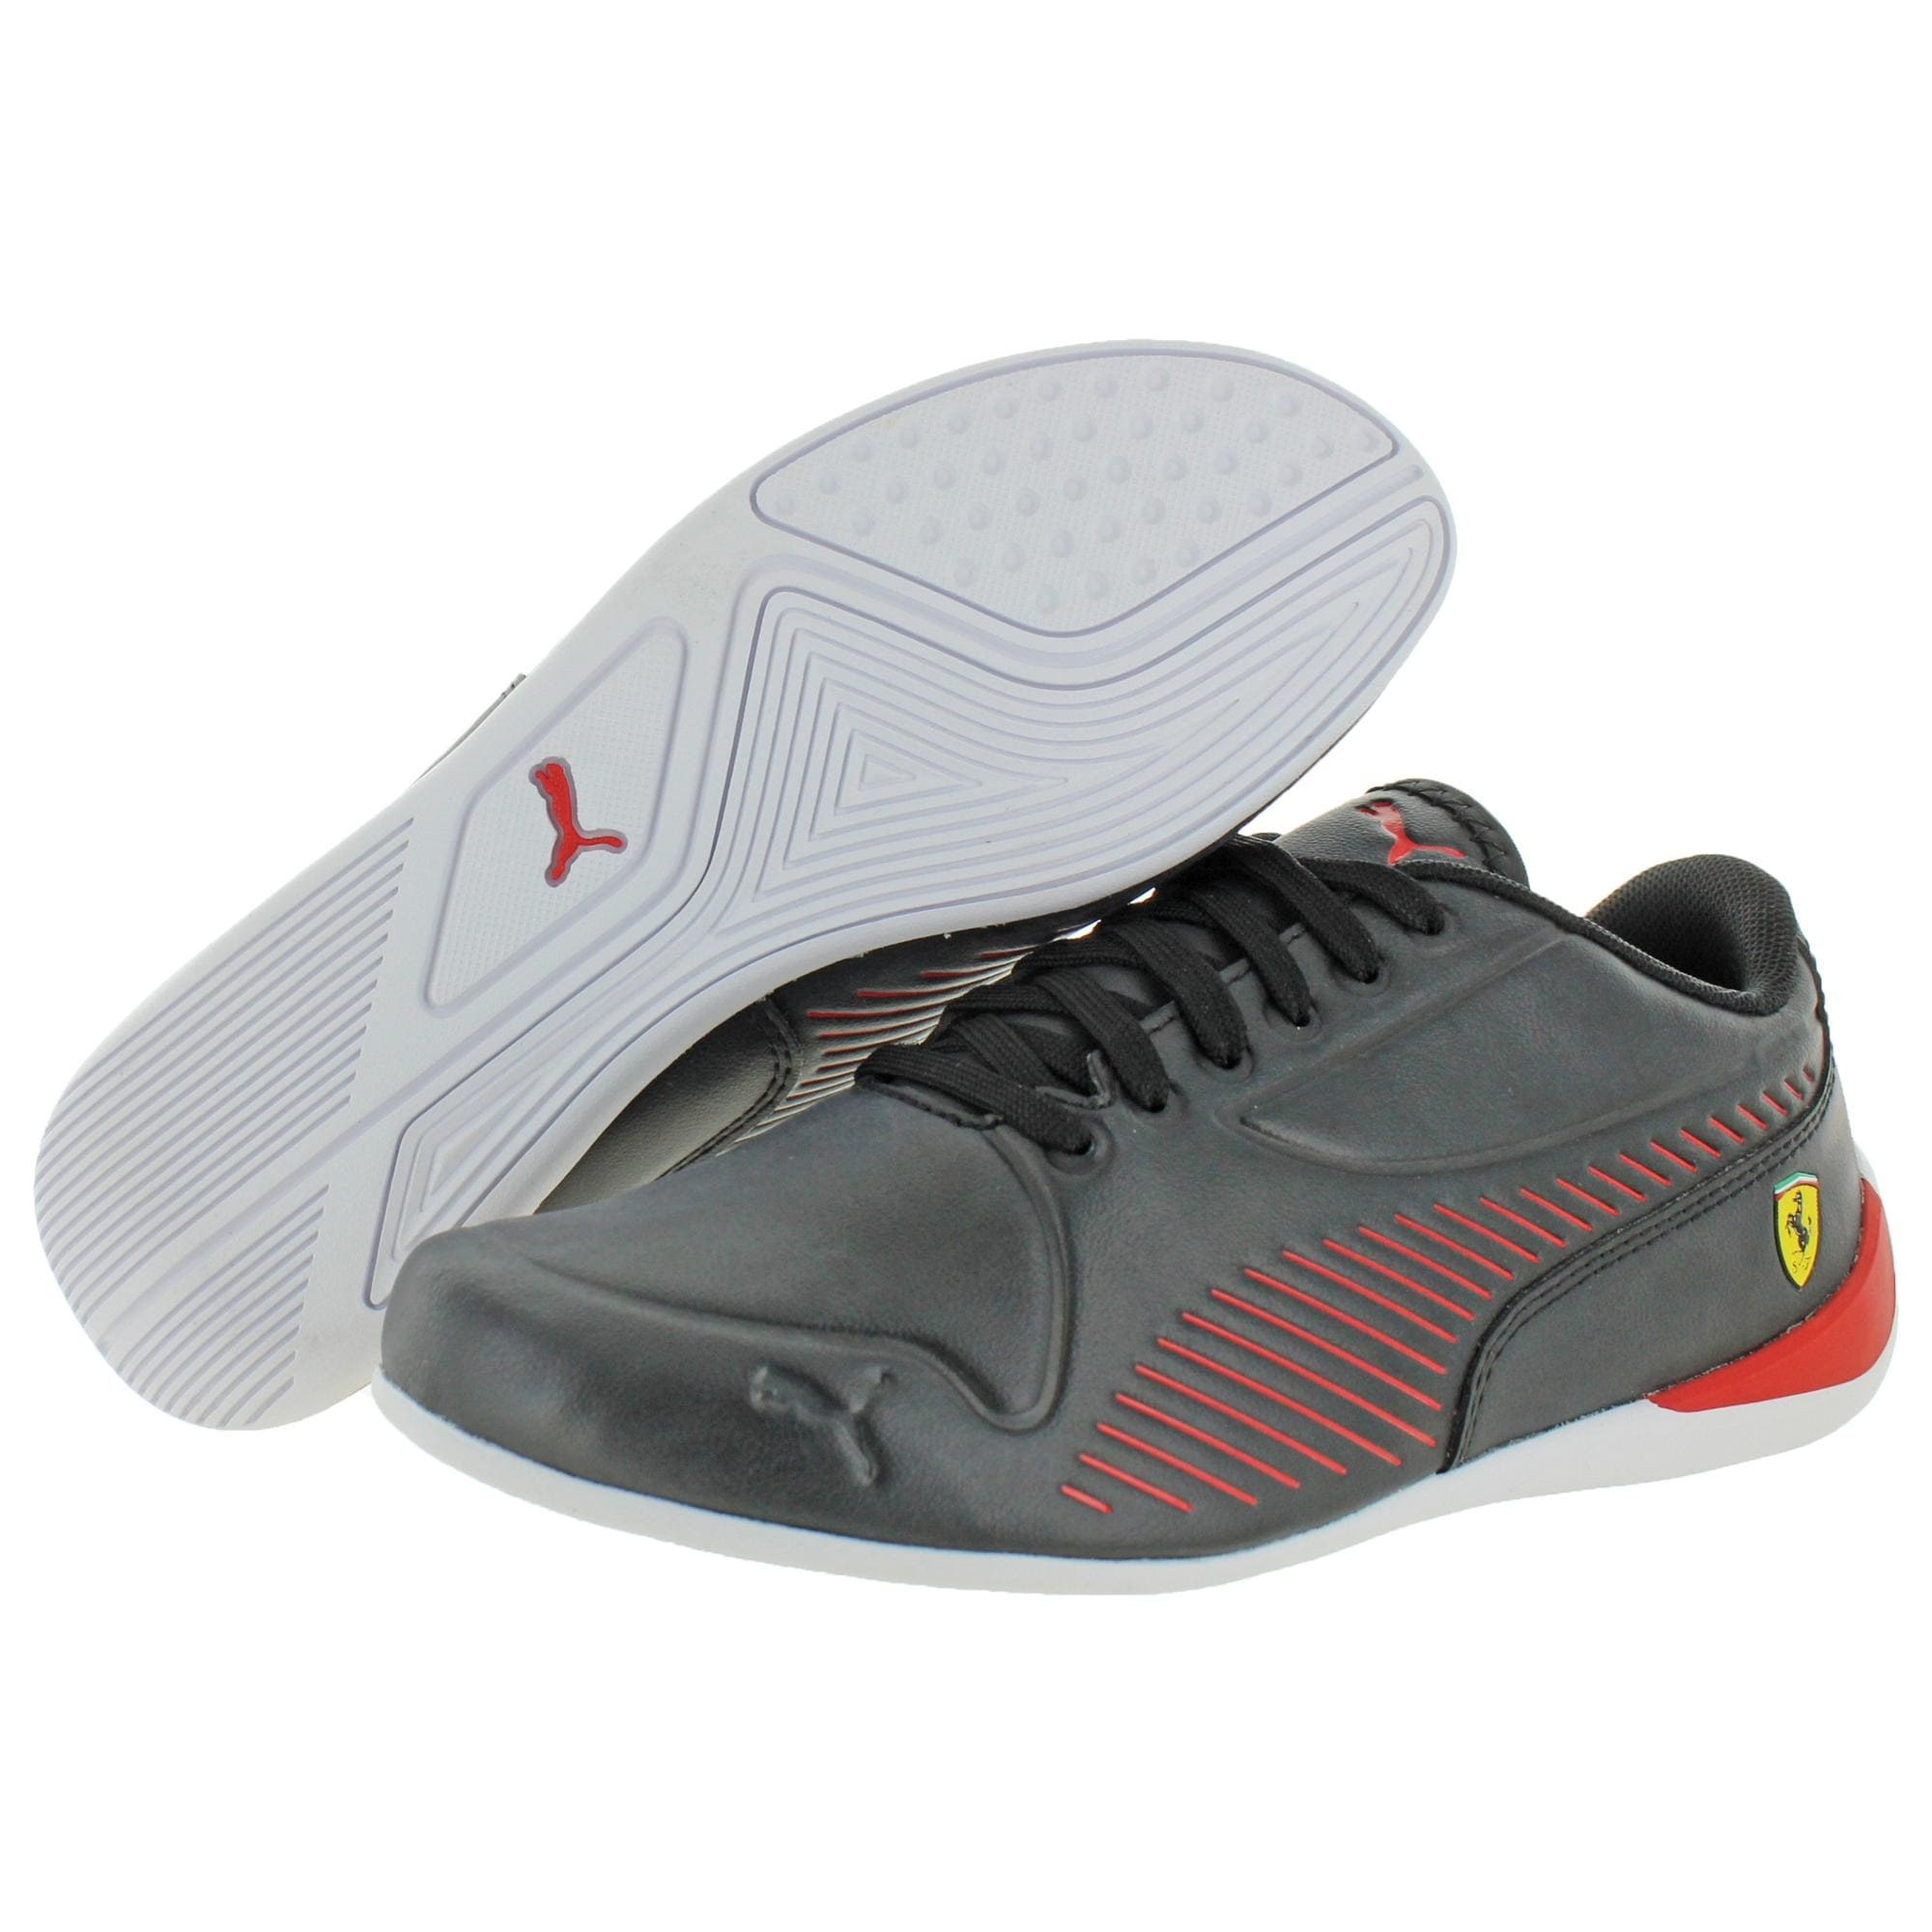 Finito cola Multa  Puma Boys SF Drift Cat 7S Ultra Athletic Shoes Faux Leather Lace Up - Puma  Black/Rosso Corsa - Overstock - 32043806